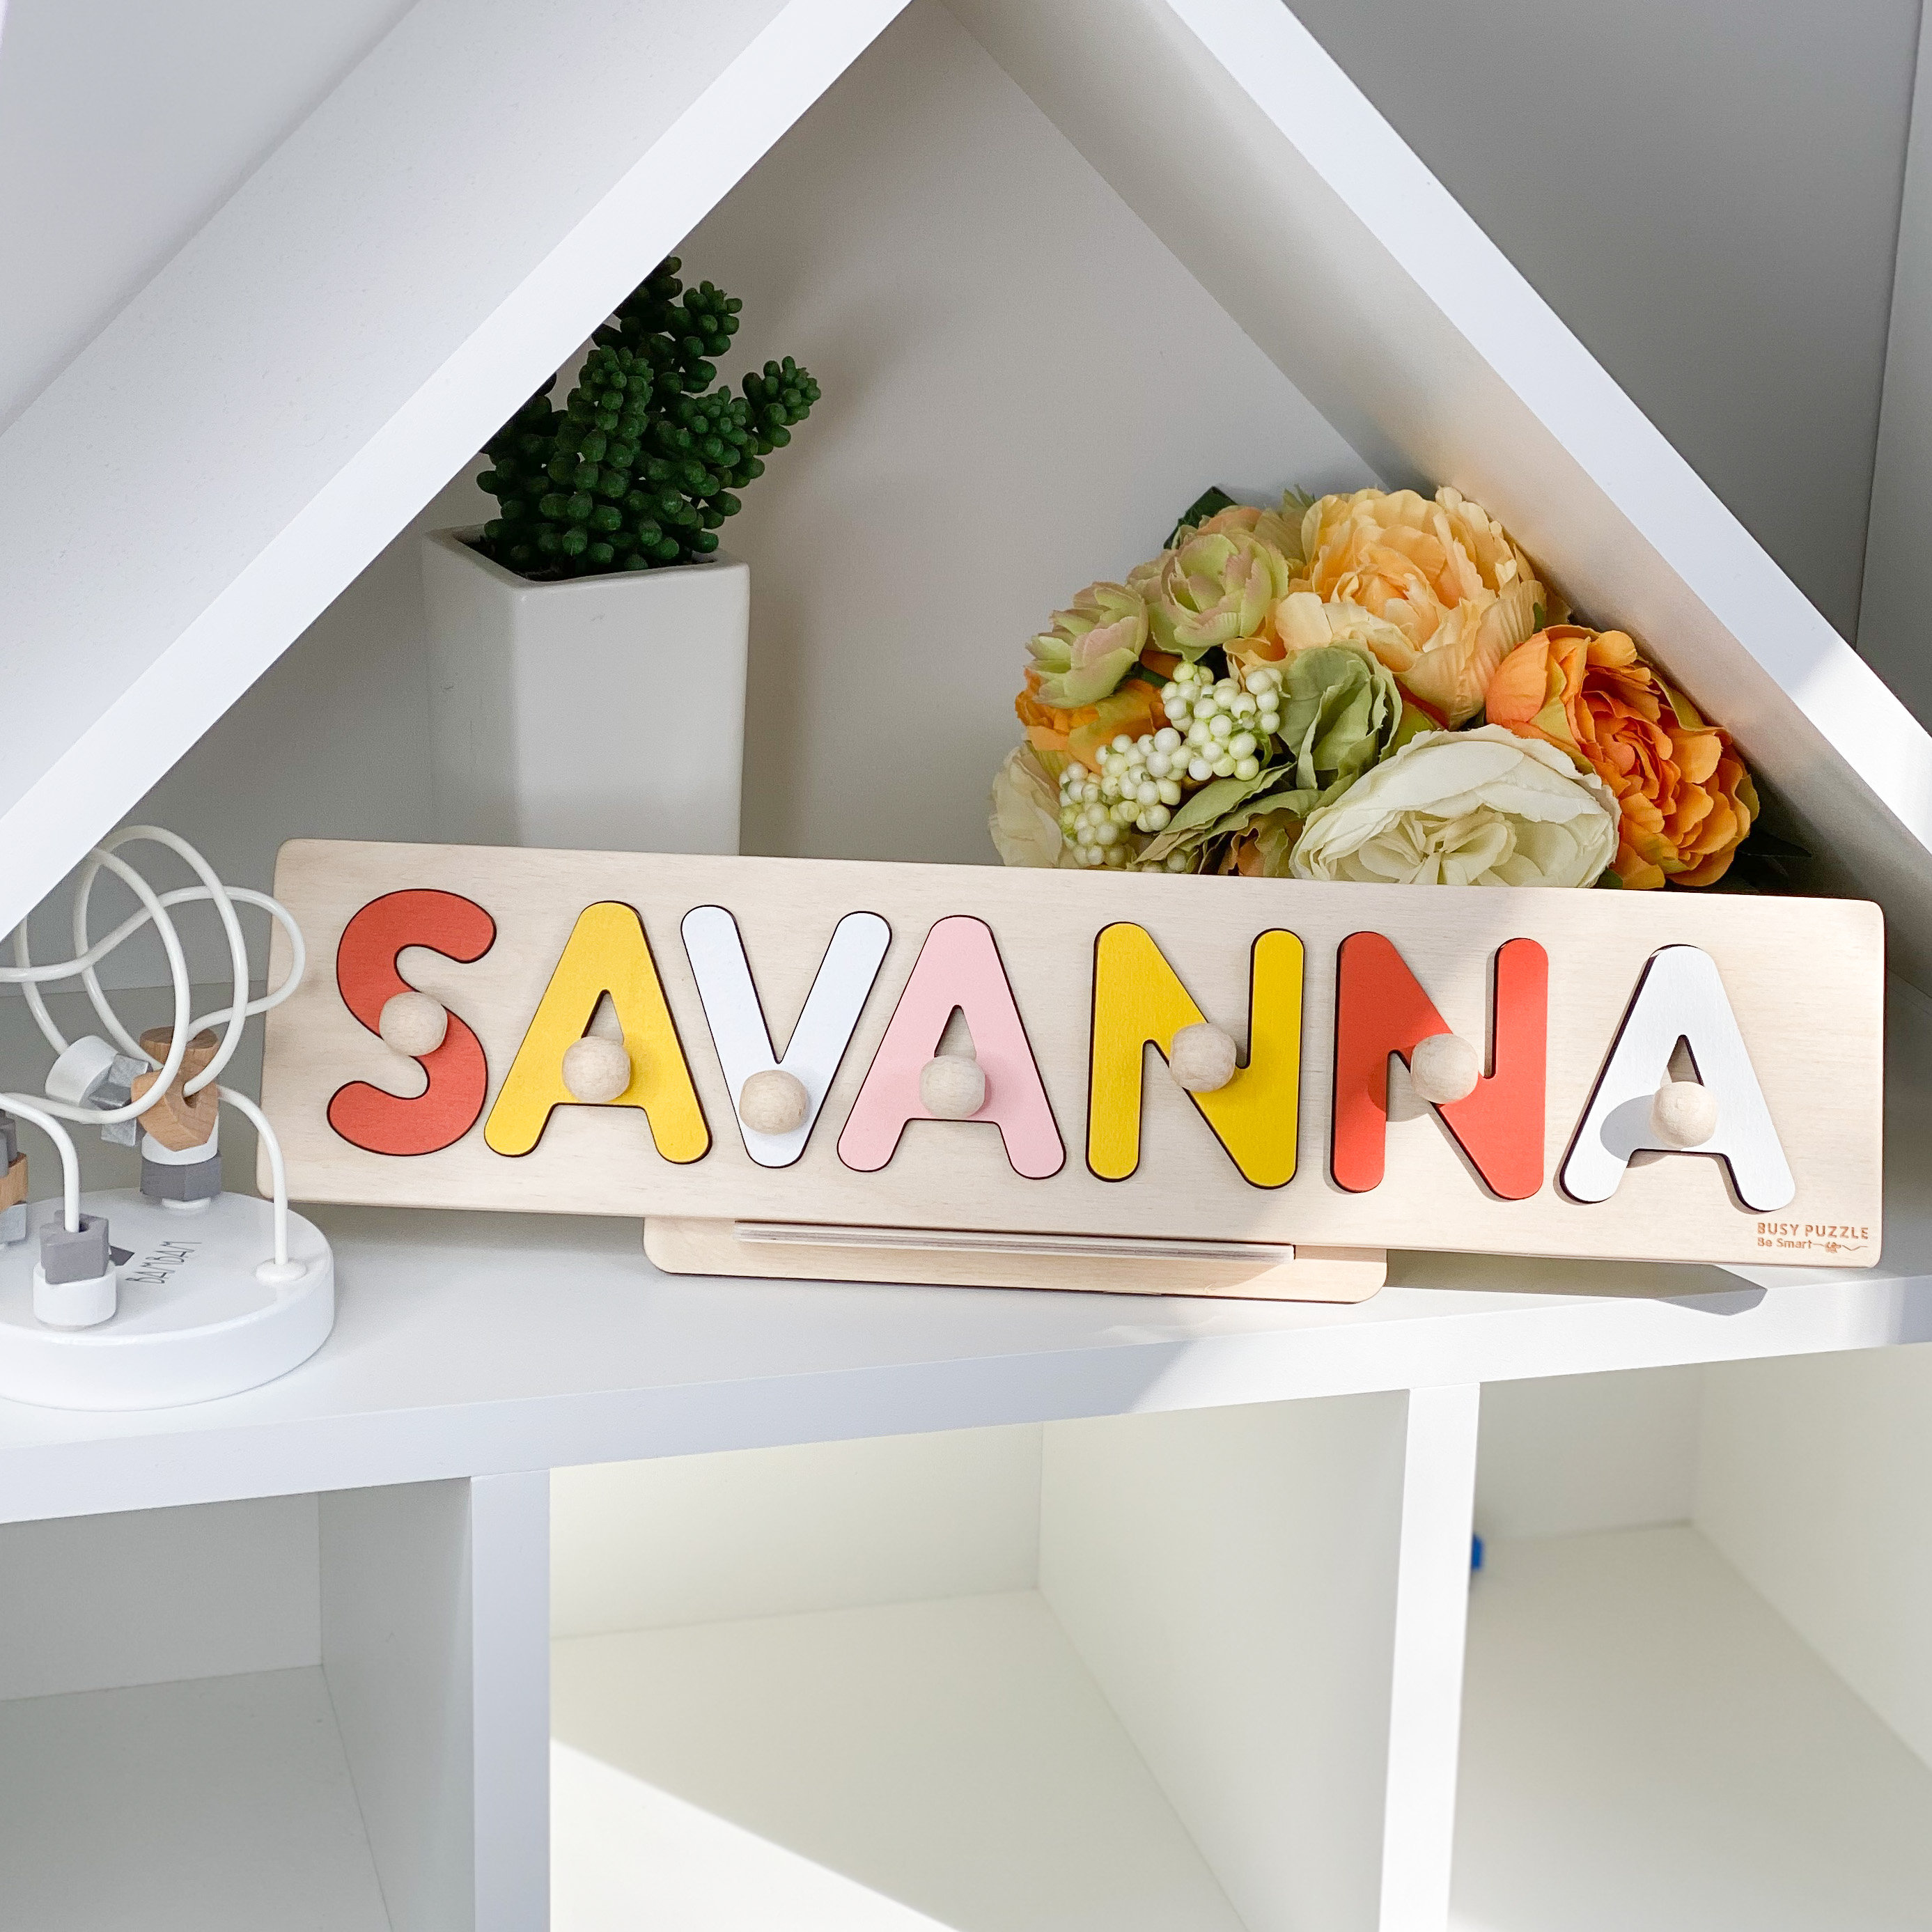 Baby Girl and Baby Boy Name Puzzle by BusyPuzzle image 2